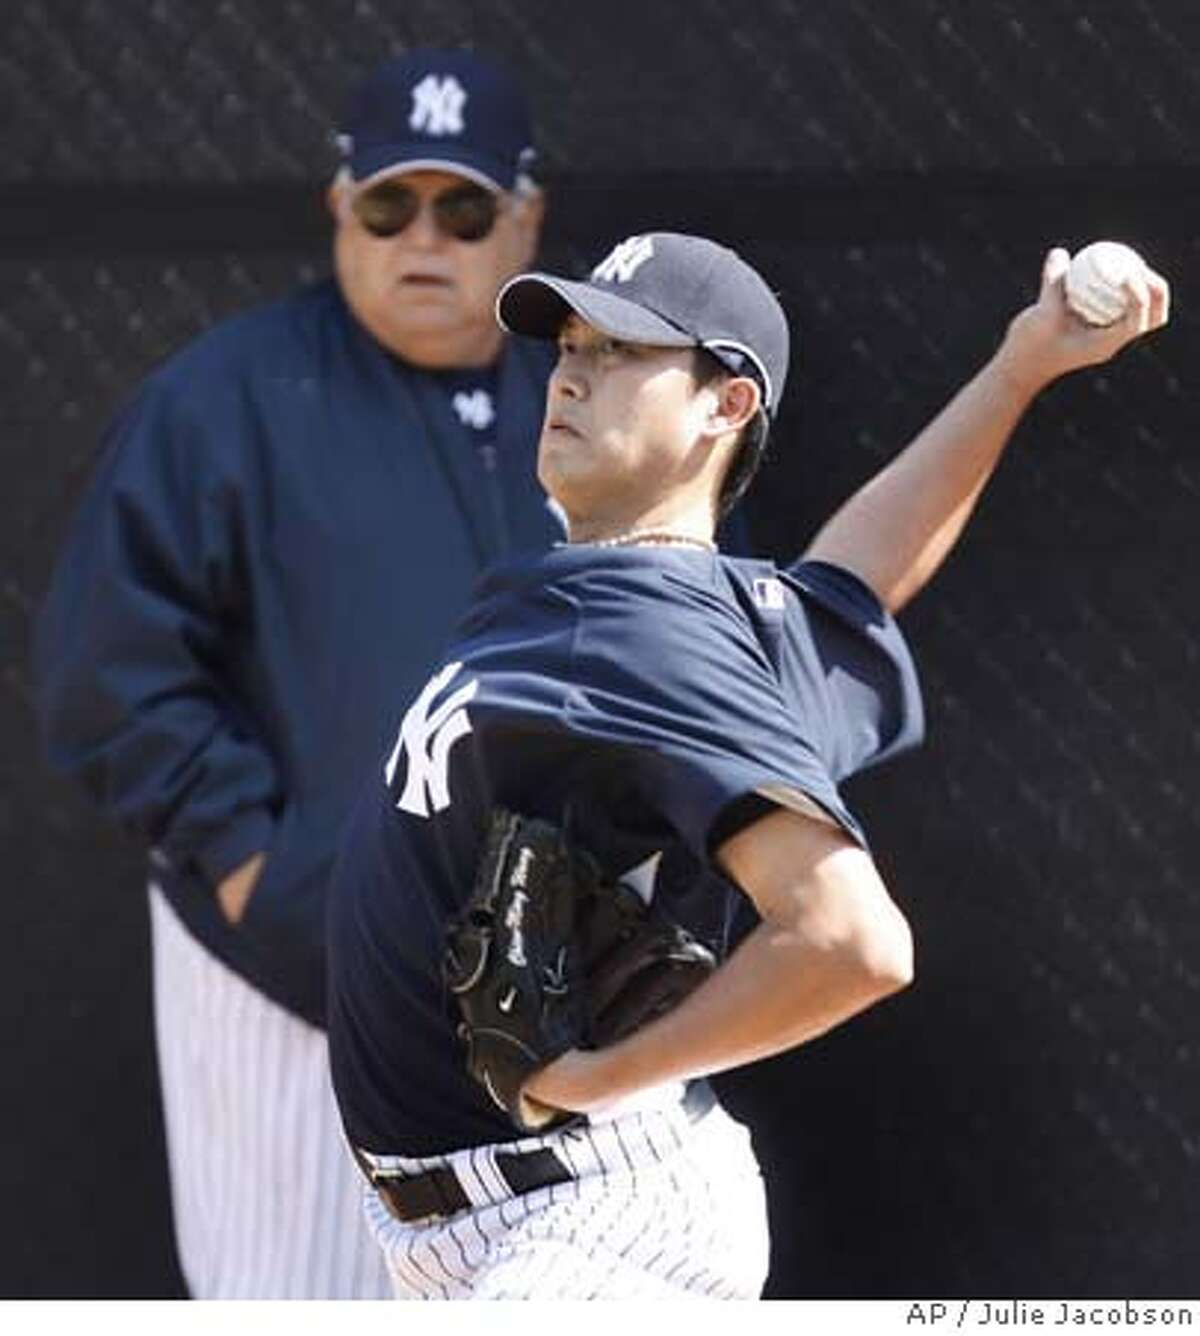 New York Yankees pitcher Chien-Ming Wang, right, throws in the bullpen as Yankees vice president Billy Connors looks on during the first day of spring training workouts Friday, Feb. 15, 2008 at Legends Field in Tampa, Fla. (AP Photo/Julie Jacobson) EFE OUT